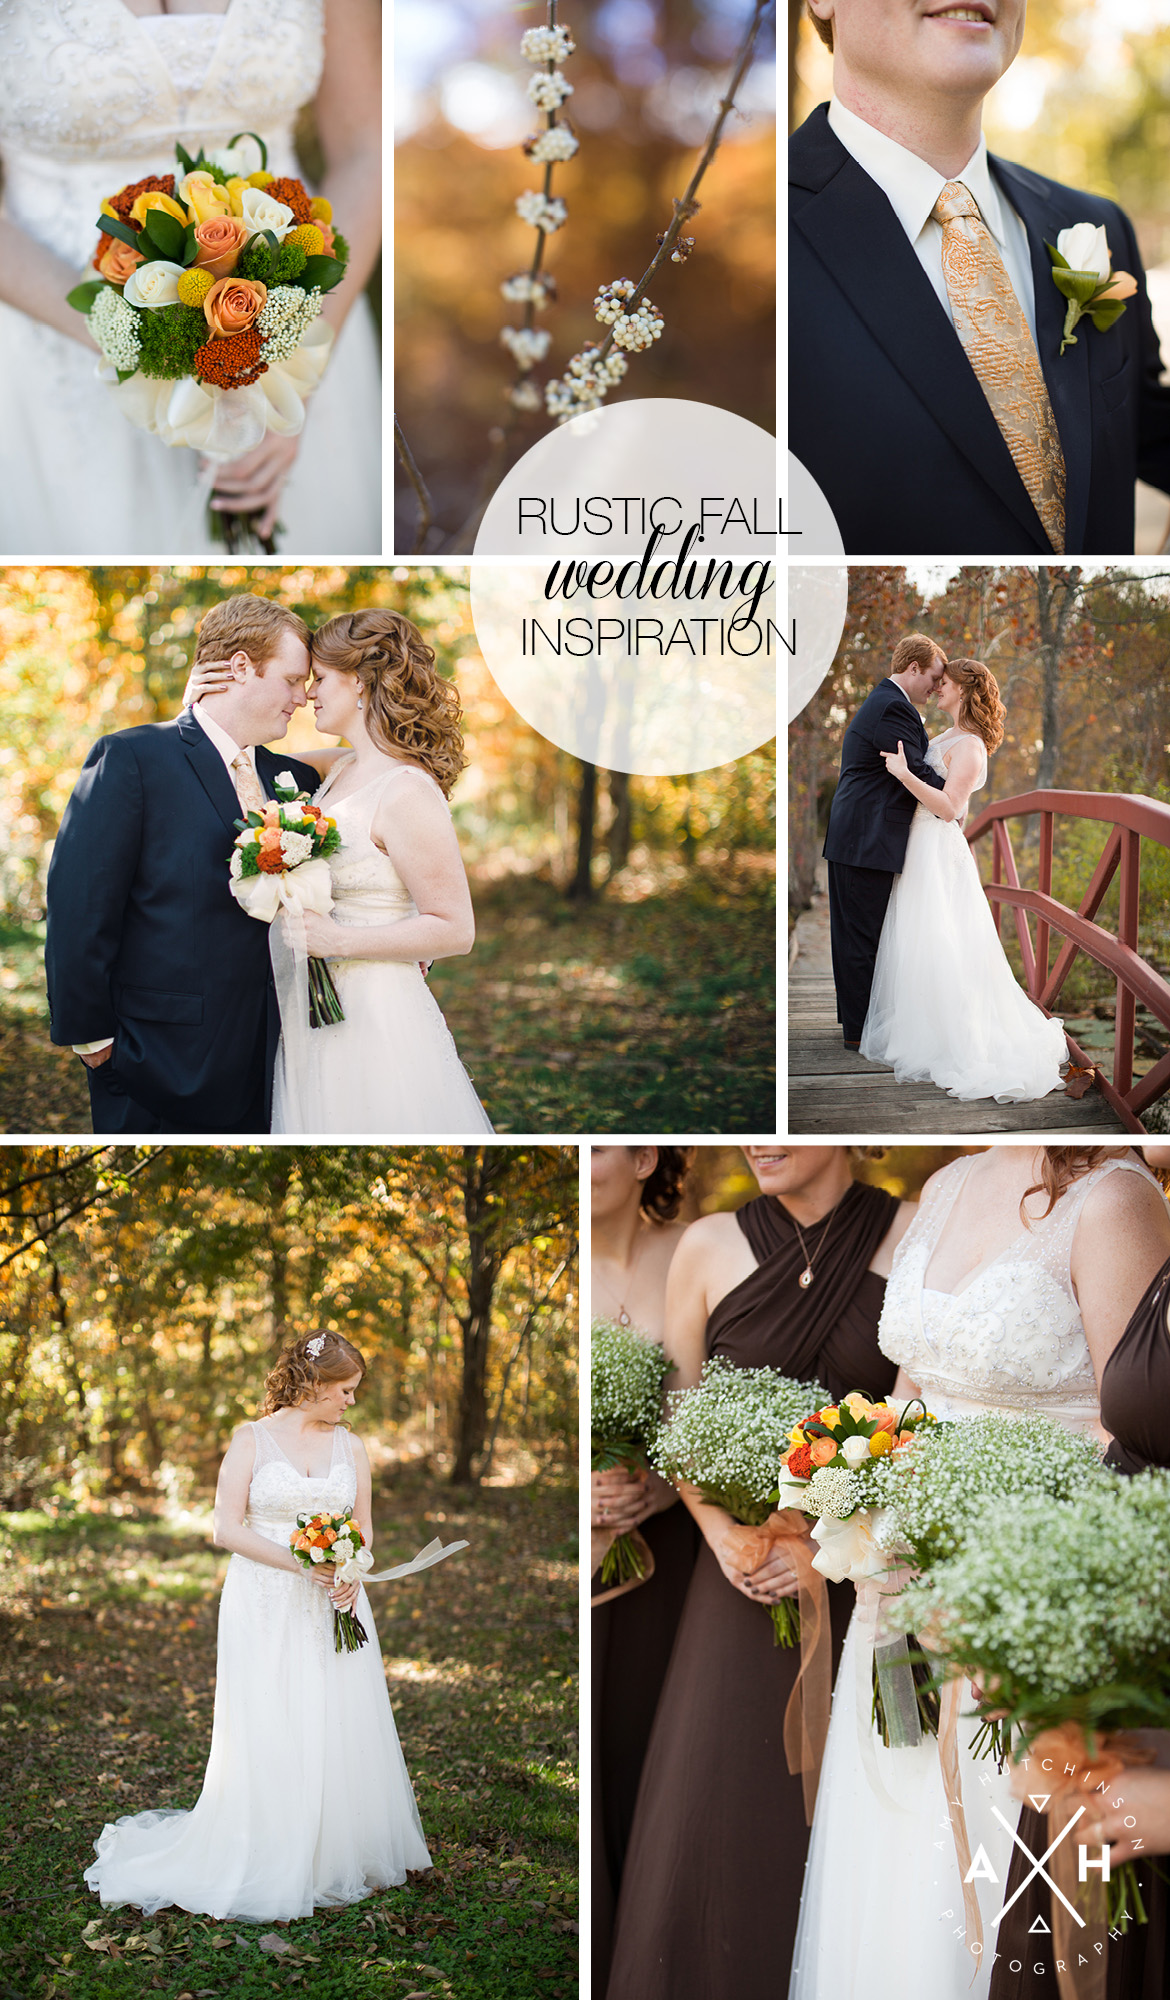 Woodland Rustic Fall Wedding Inspiration